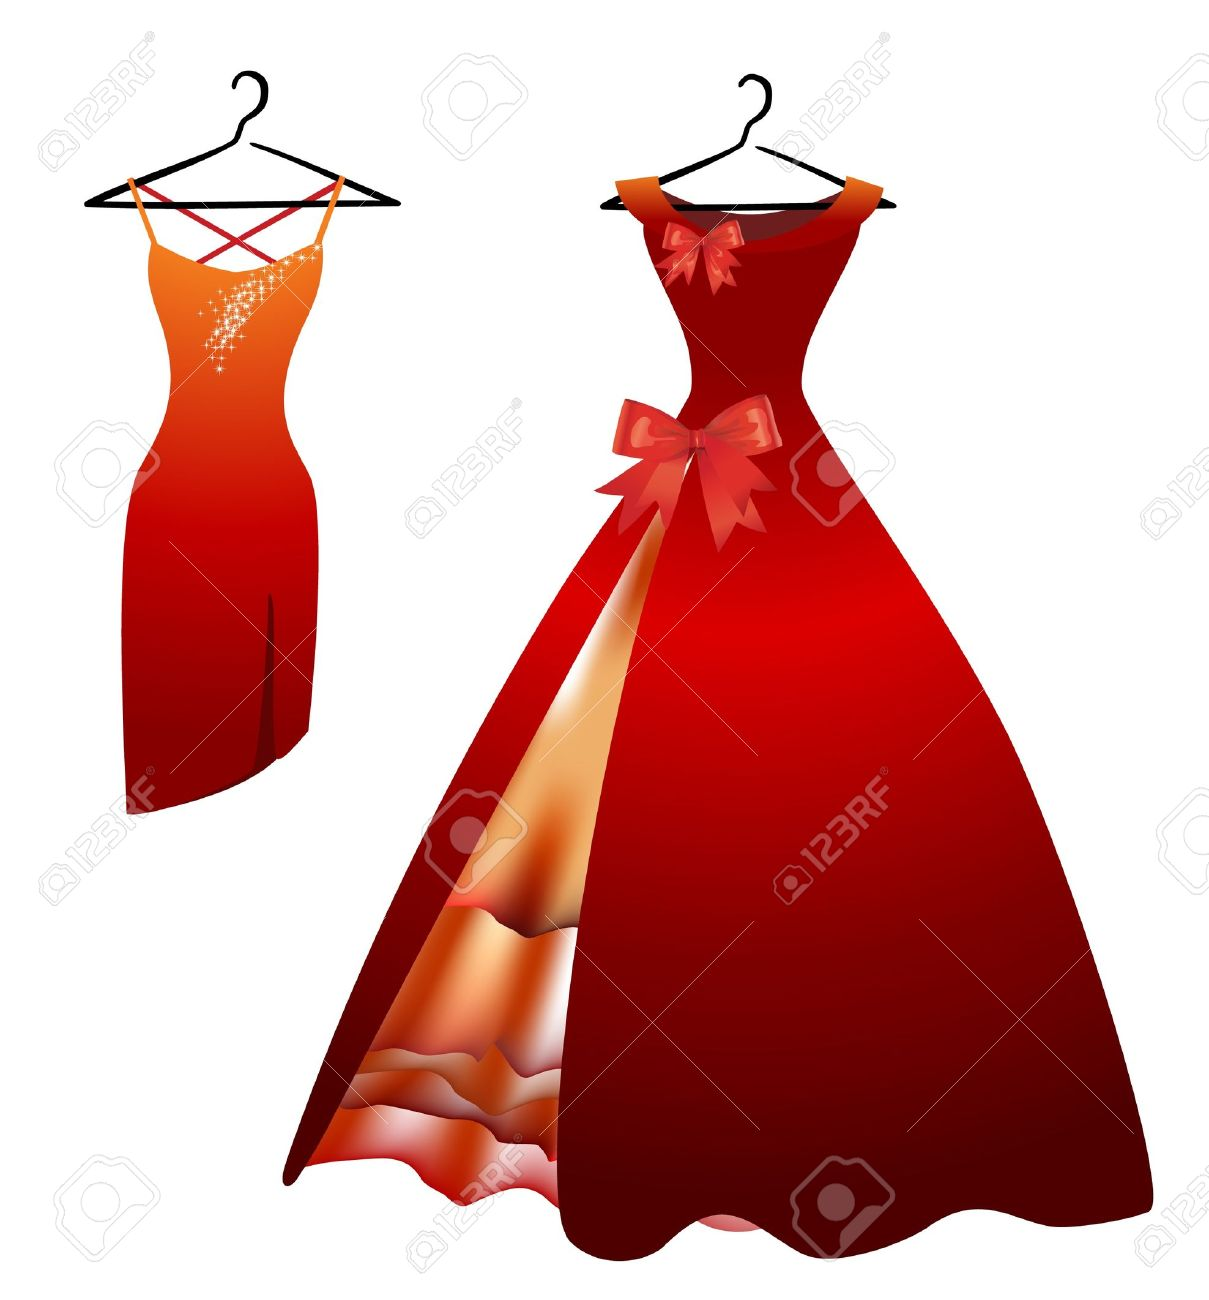 636 prom dress cliparts stock vector and royalty free prom dress rh 123rf com Prom Queen Clip Art Prom Tickets